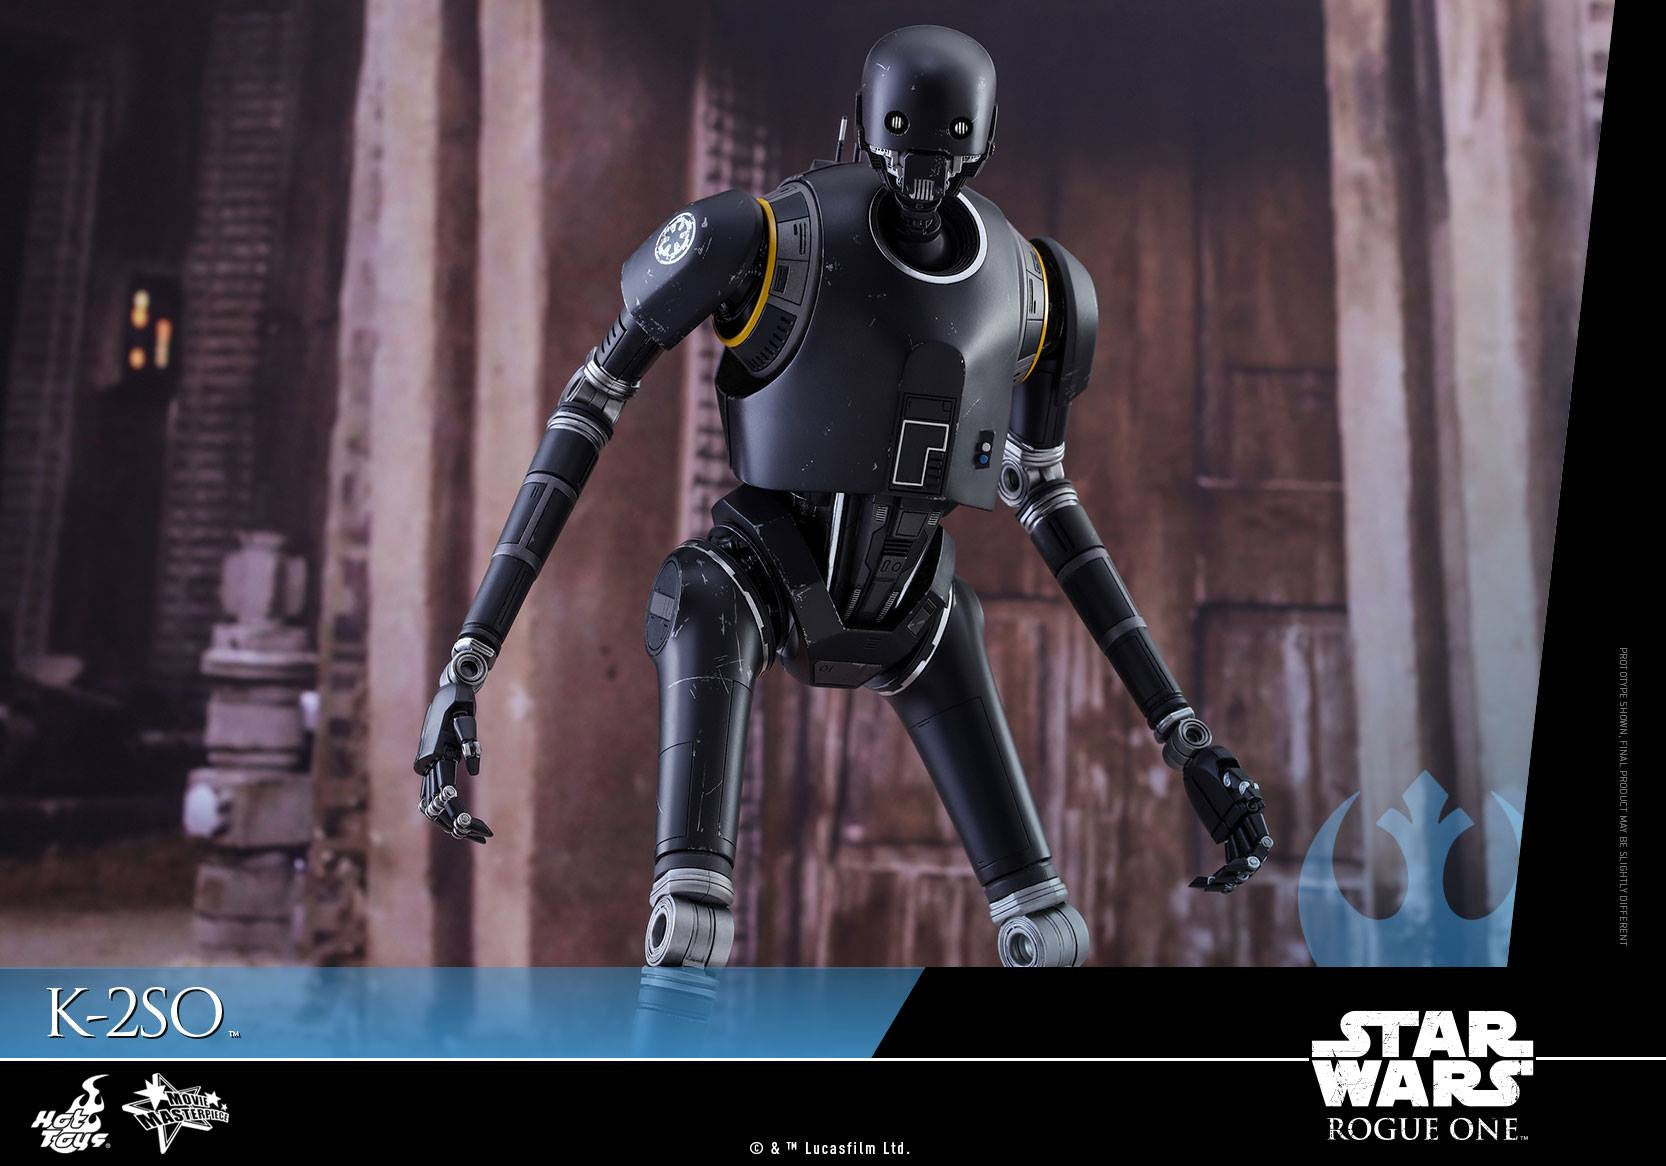 Hot Toys - MMS406 - Rogue One: A Star Wars Story - K-2SO - Marvelous Toys - 12